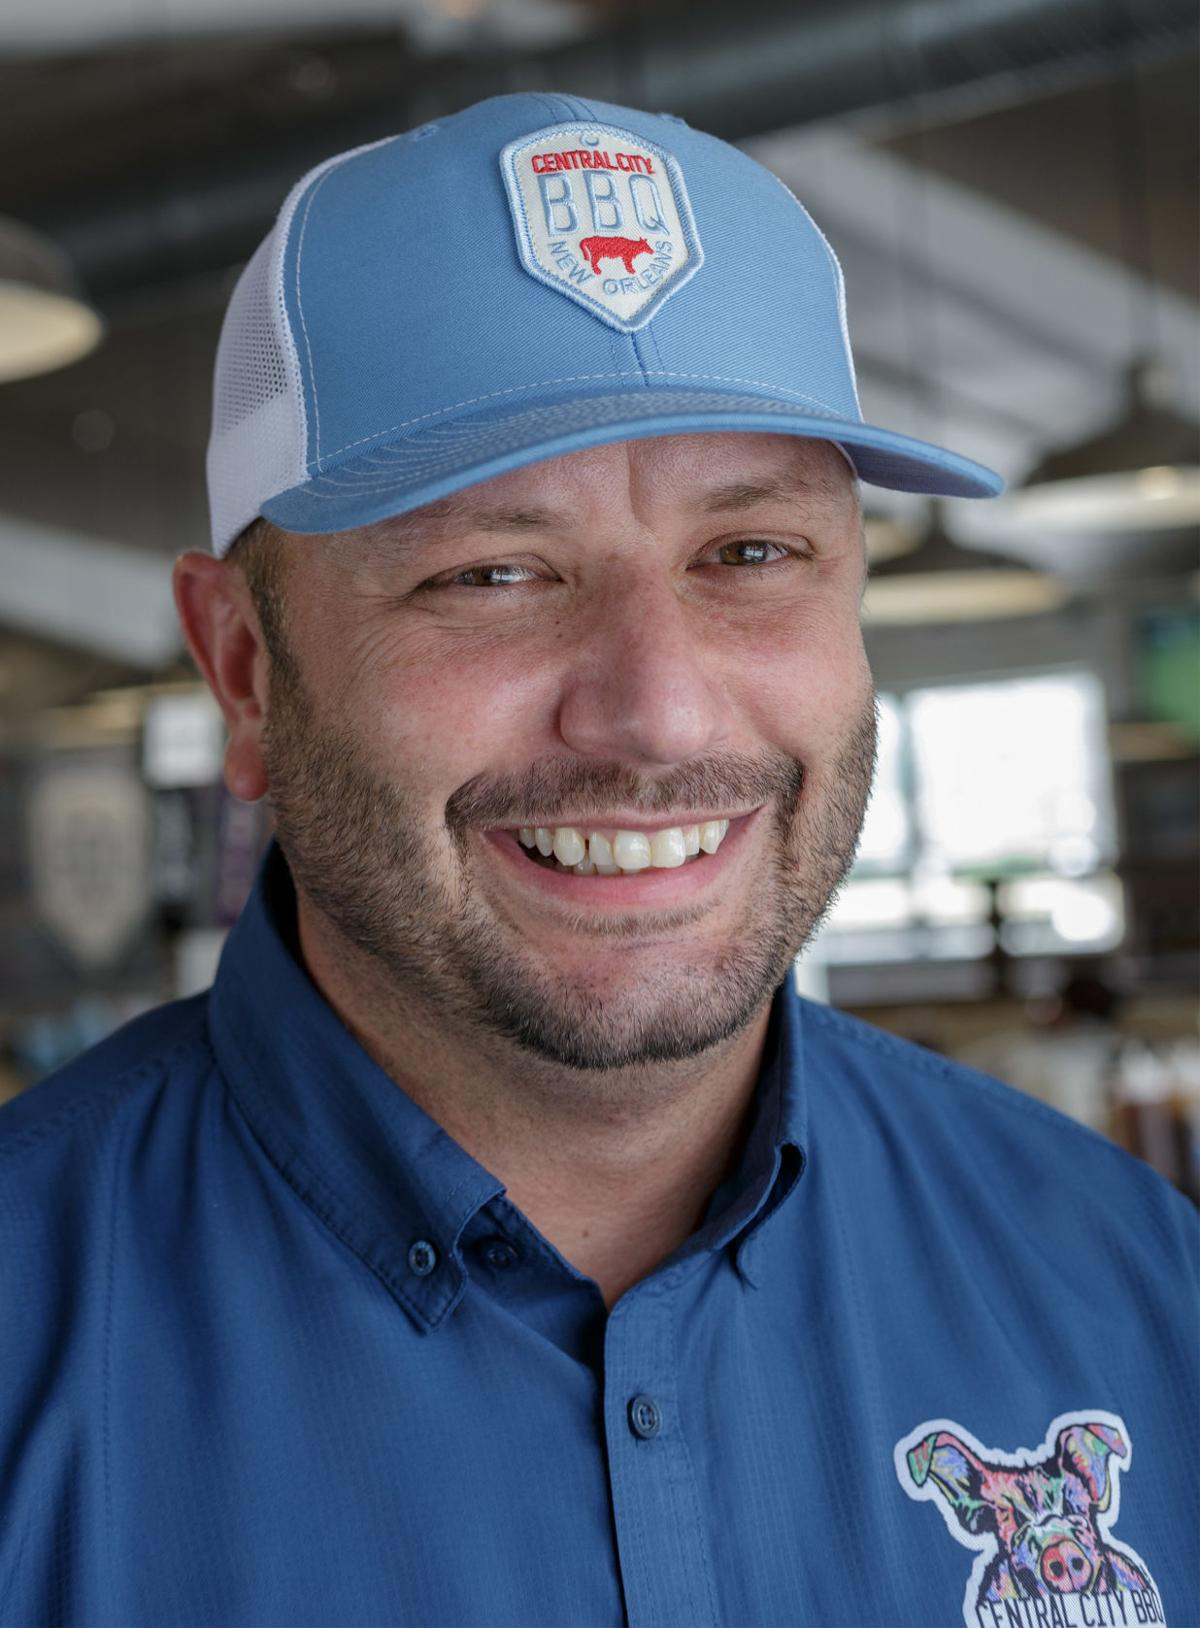 BBQ in the Big Easy, James Cruse, pitmaster at Central City BBQ